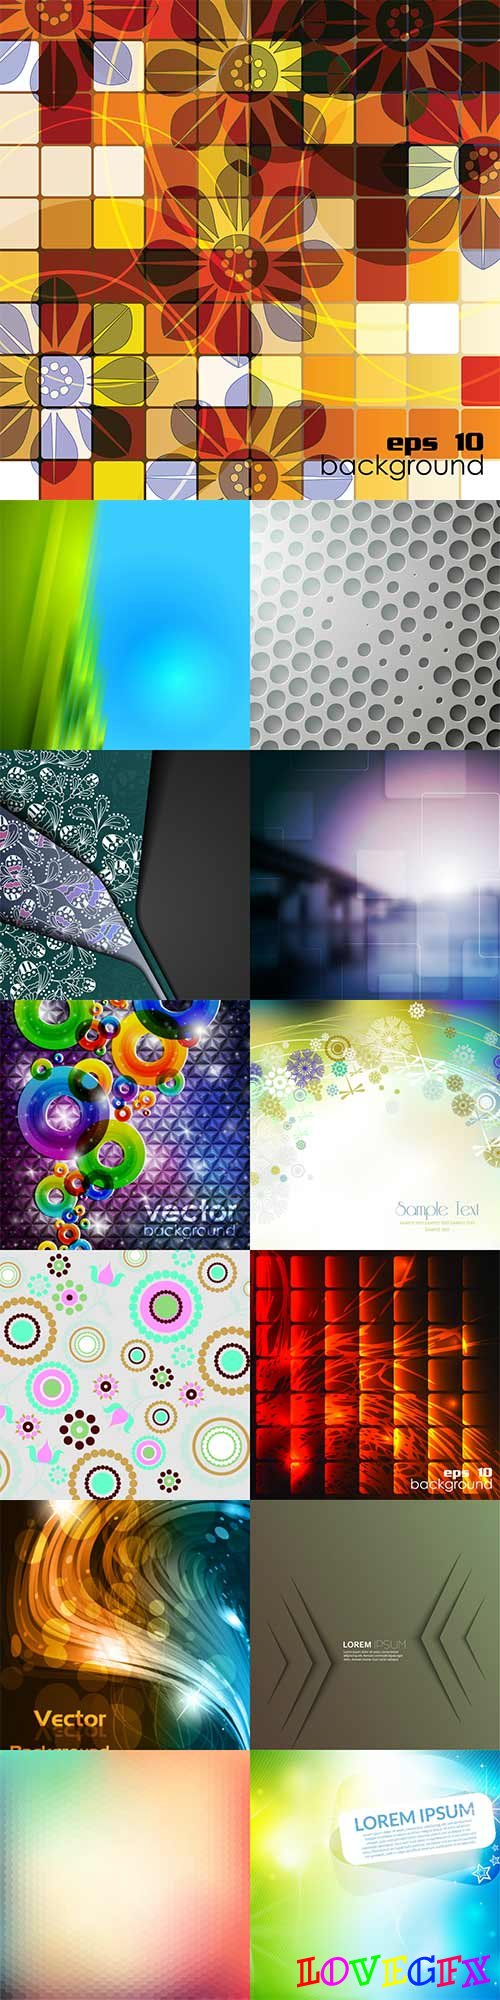 Bright colorful abstract backgrounds vector -58